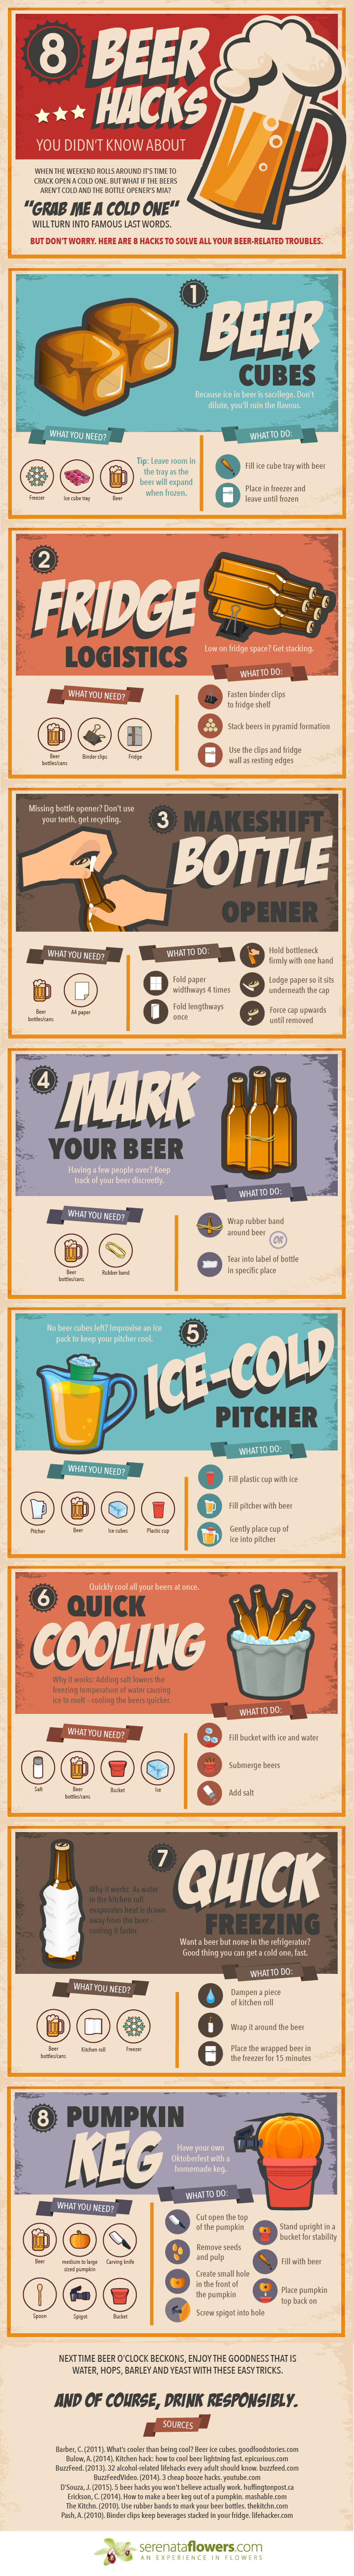 8 Beer Hacks you Didn't Know About #infographic